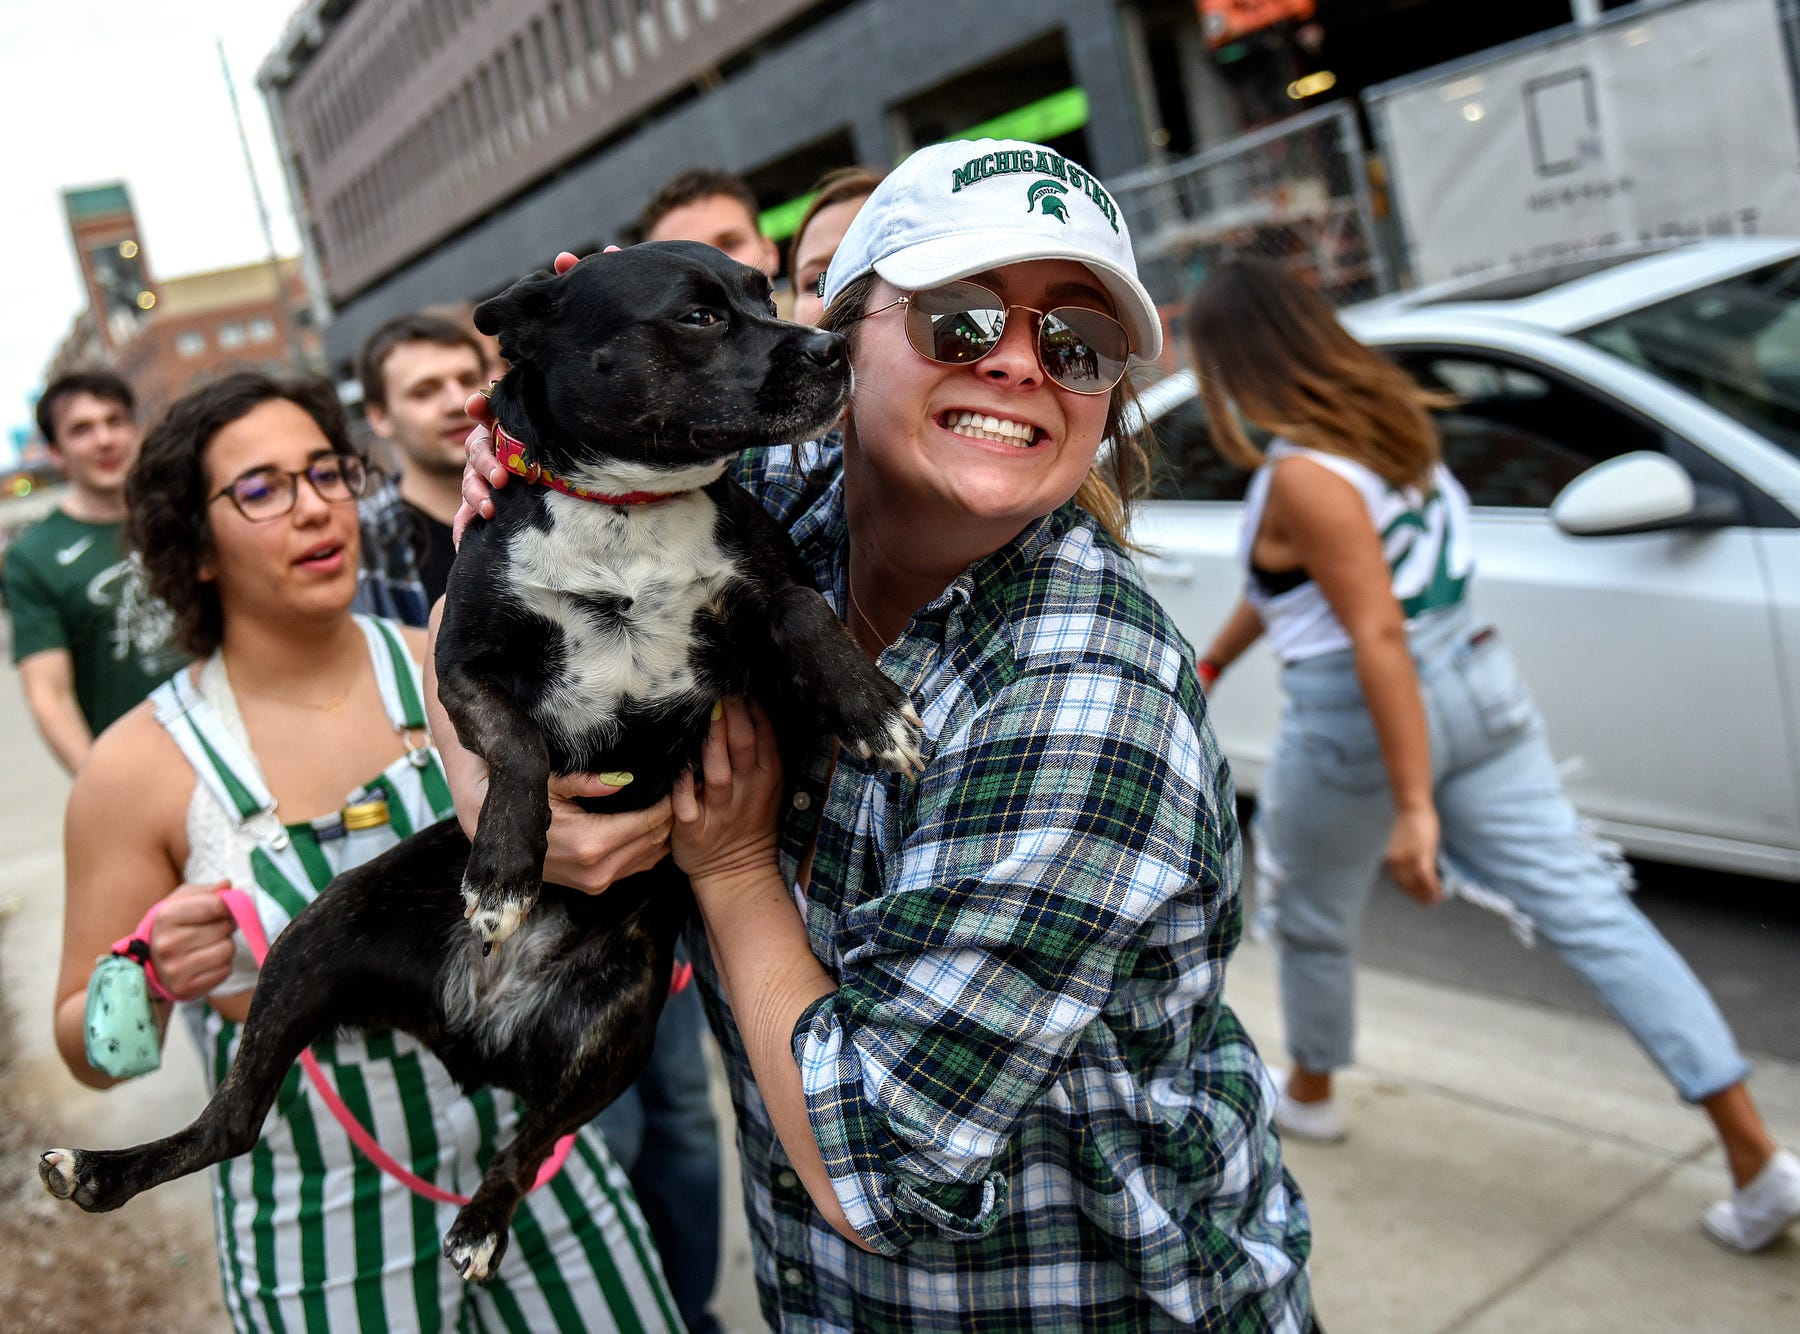 Megan Fleischmann holds up her dog Lola as she walks around downtown East Lansing with friends before the Michigan State Spartans' Final Four game against Texas Tech on Saturday, April 6, 2019.